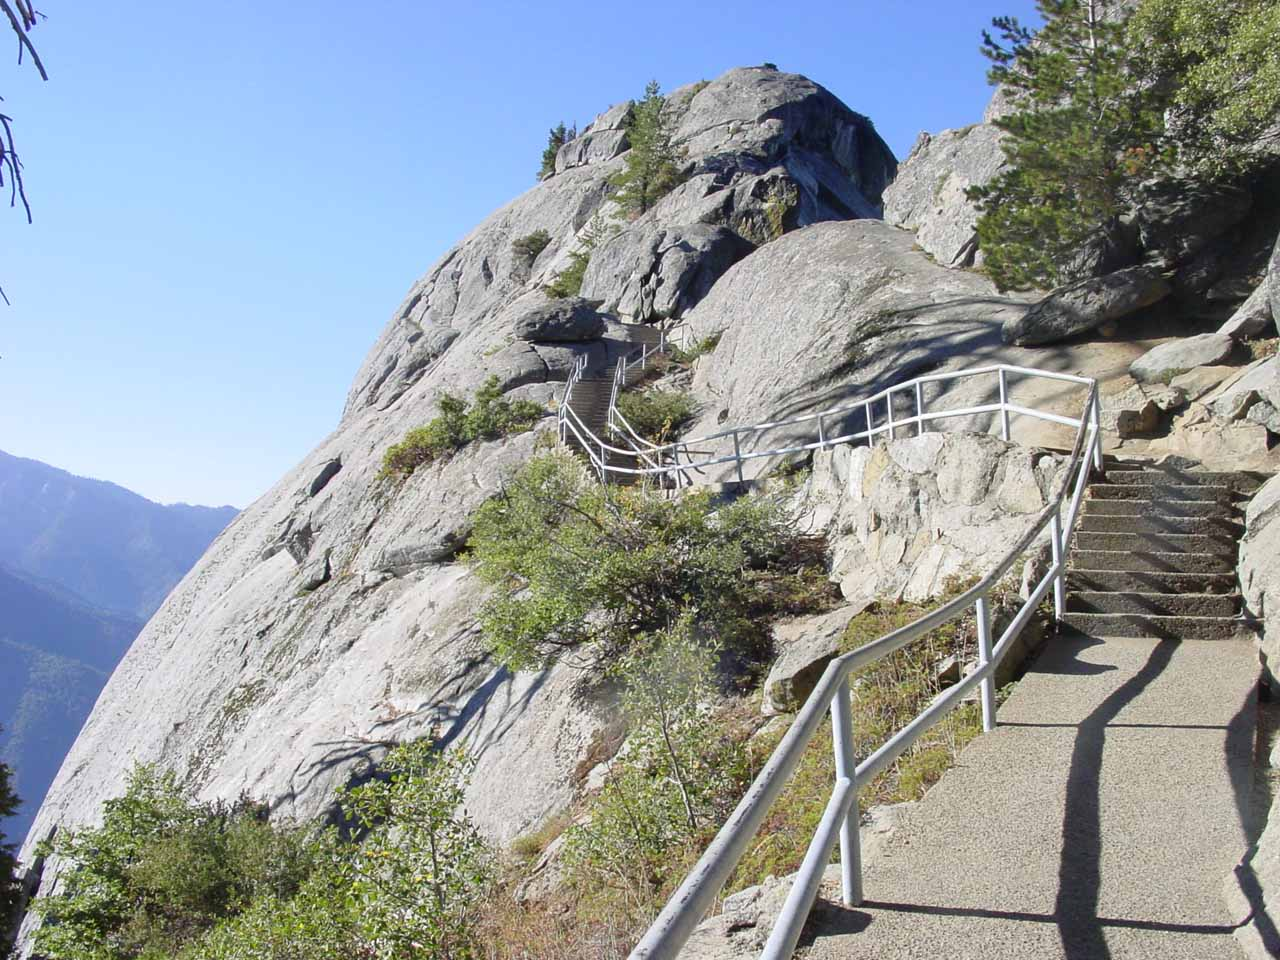 Just to the south of Lodgepole was the short climb up to the top of Moro Rock for 360 degree views